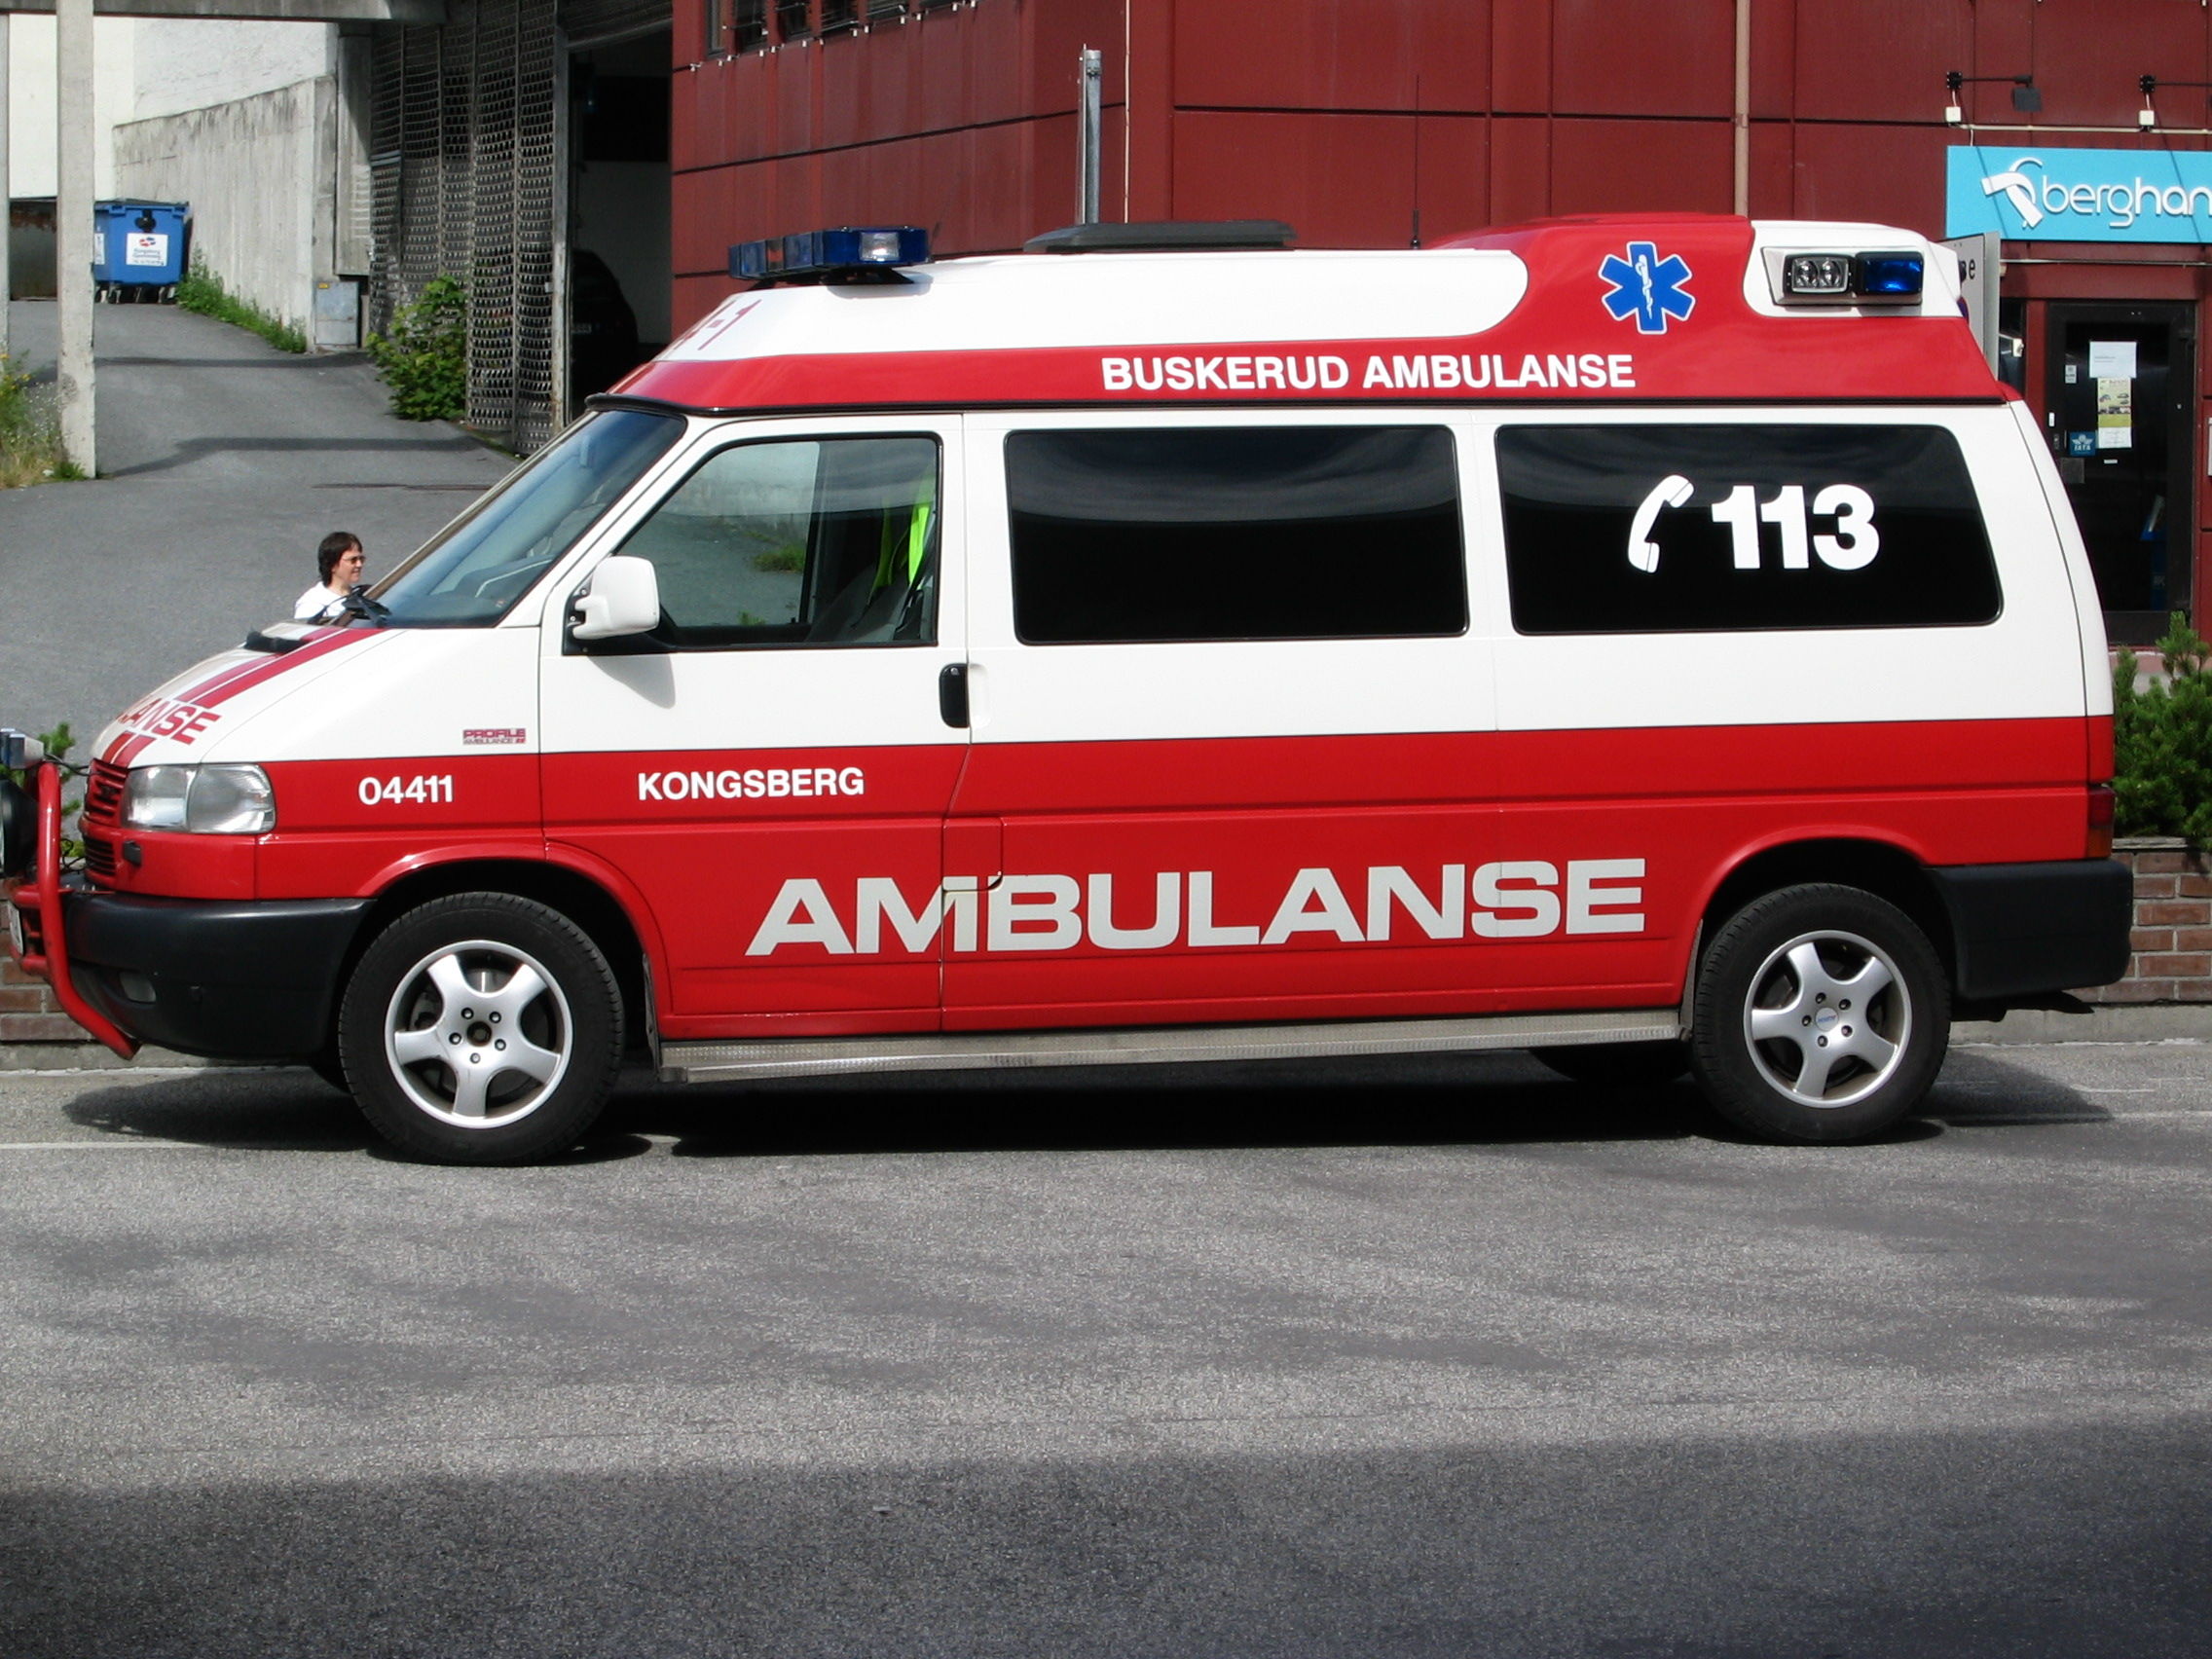 Ambulance Images file:norwegian volkswagen ambulance - wikimedia commons